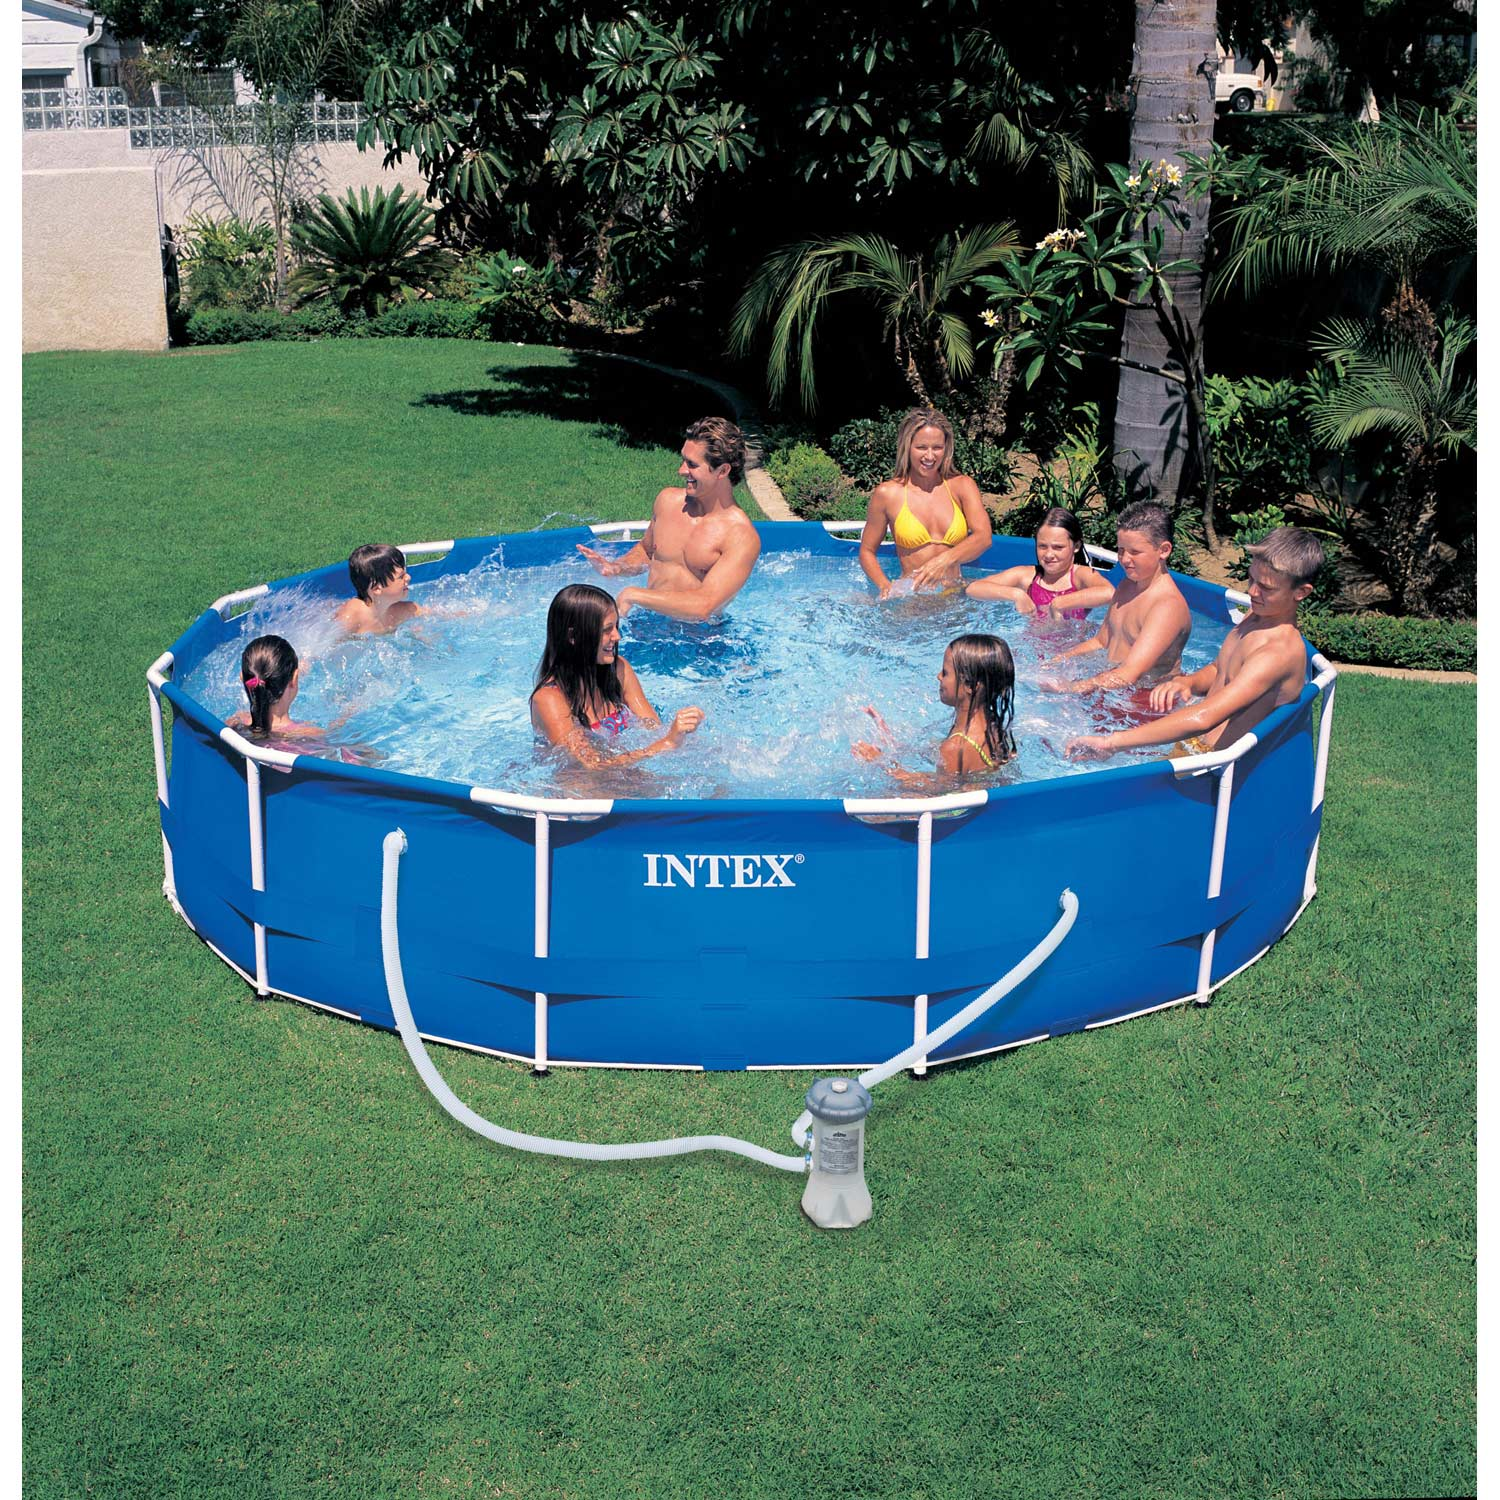 Piscine hors sol autoportante tubulaire metal frame intex for Piscine hors sol 3x3